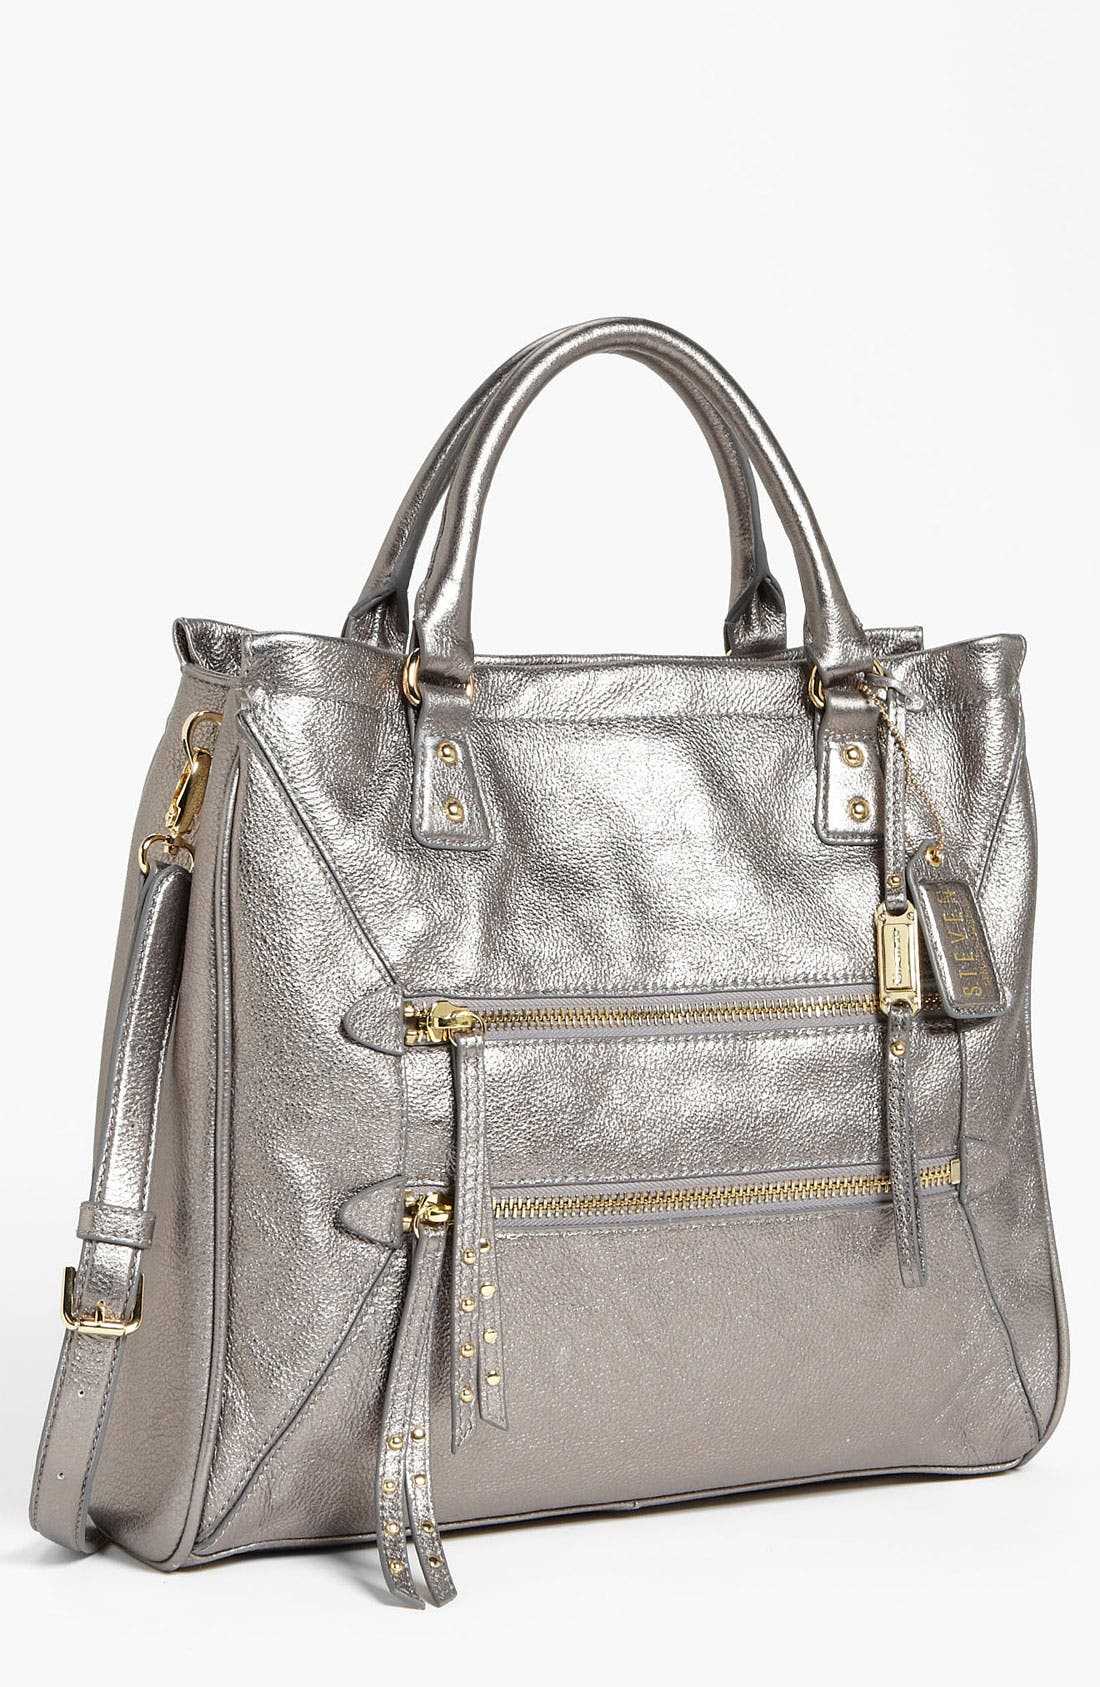 Main Image - Steven by Steve Madden 'Downtown' Tote